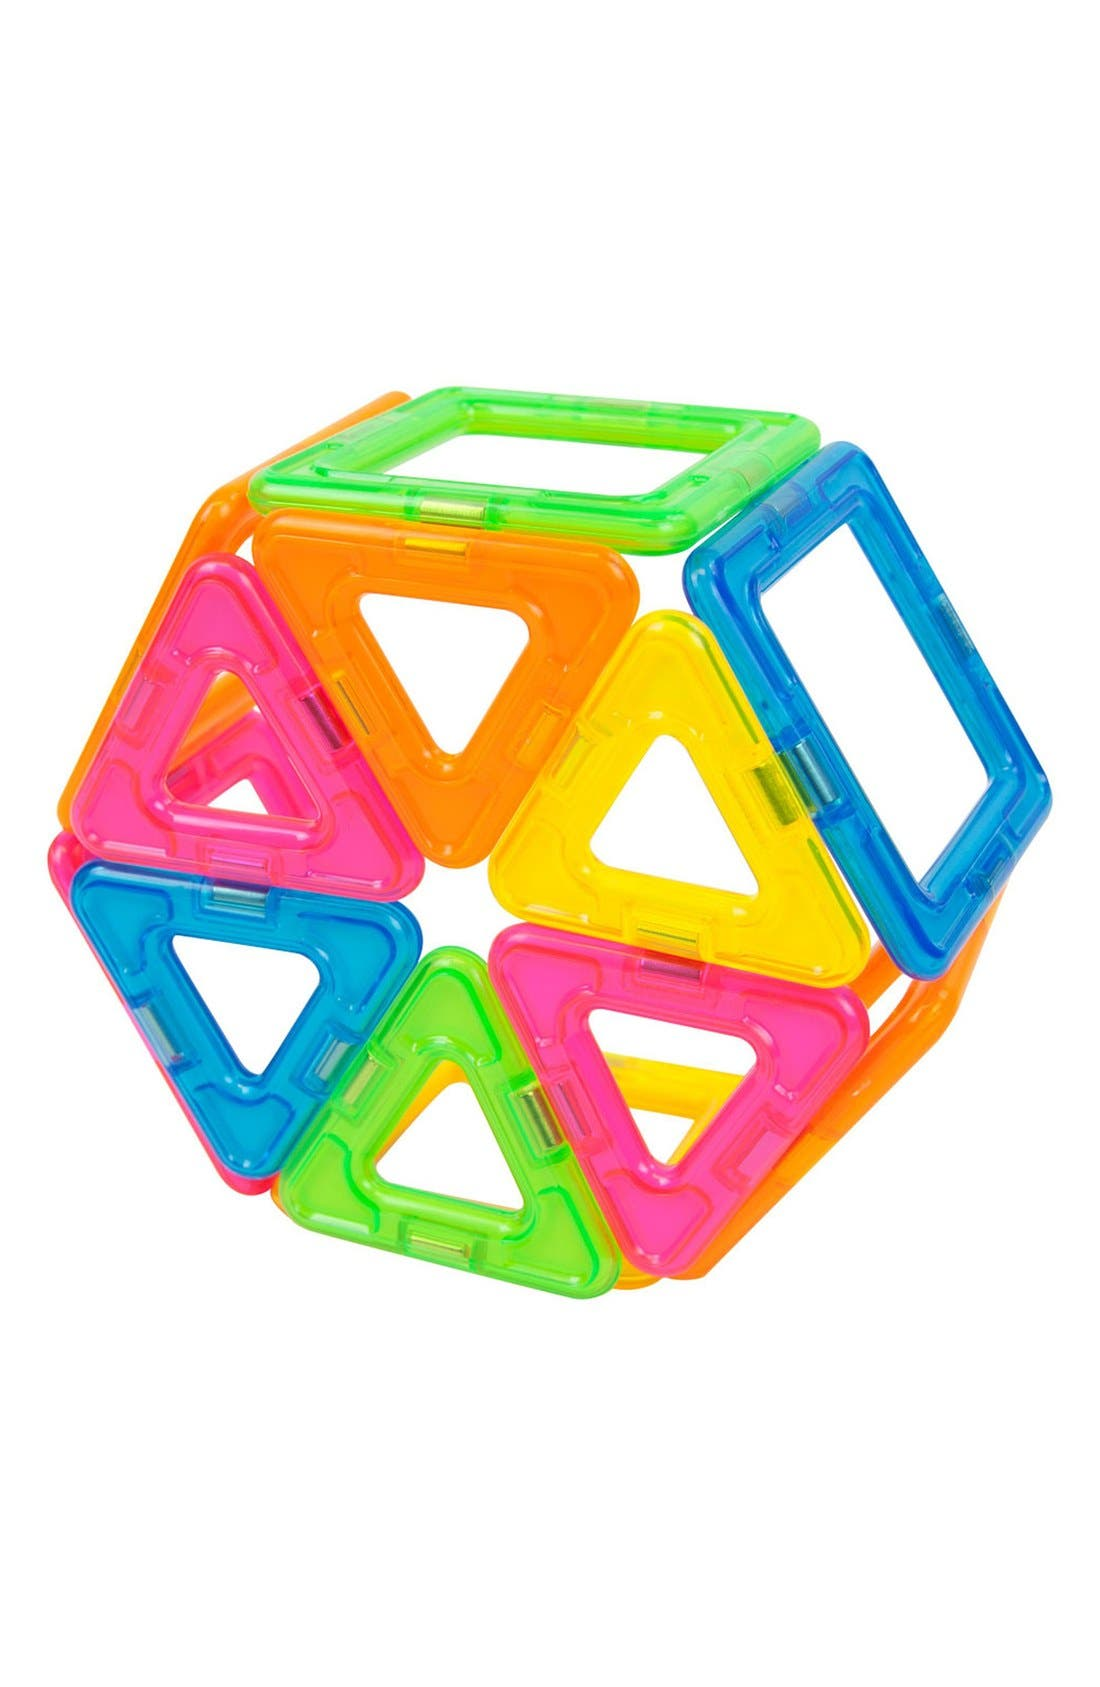 'Creator' Neon Magnetic 3D Construction Set,                             Alternate thumbnail 5, color,                             NEON RAINBOW